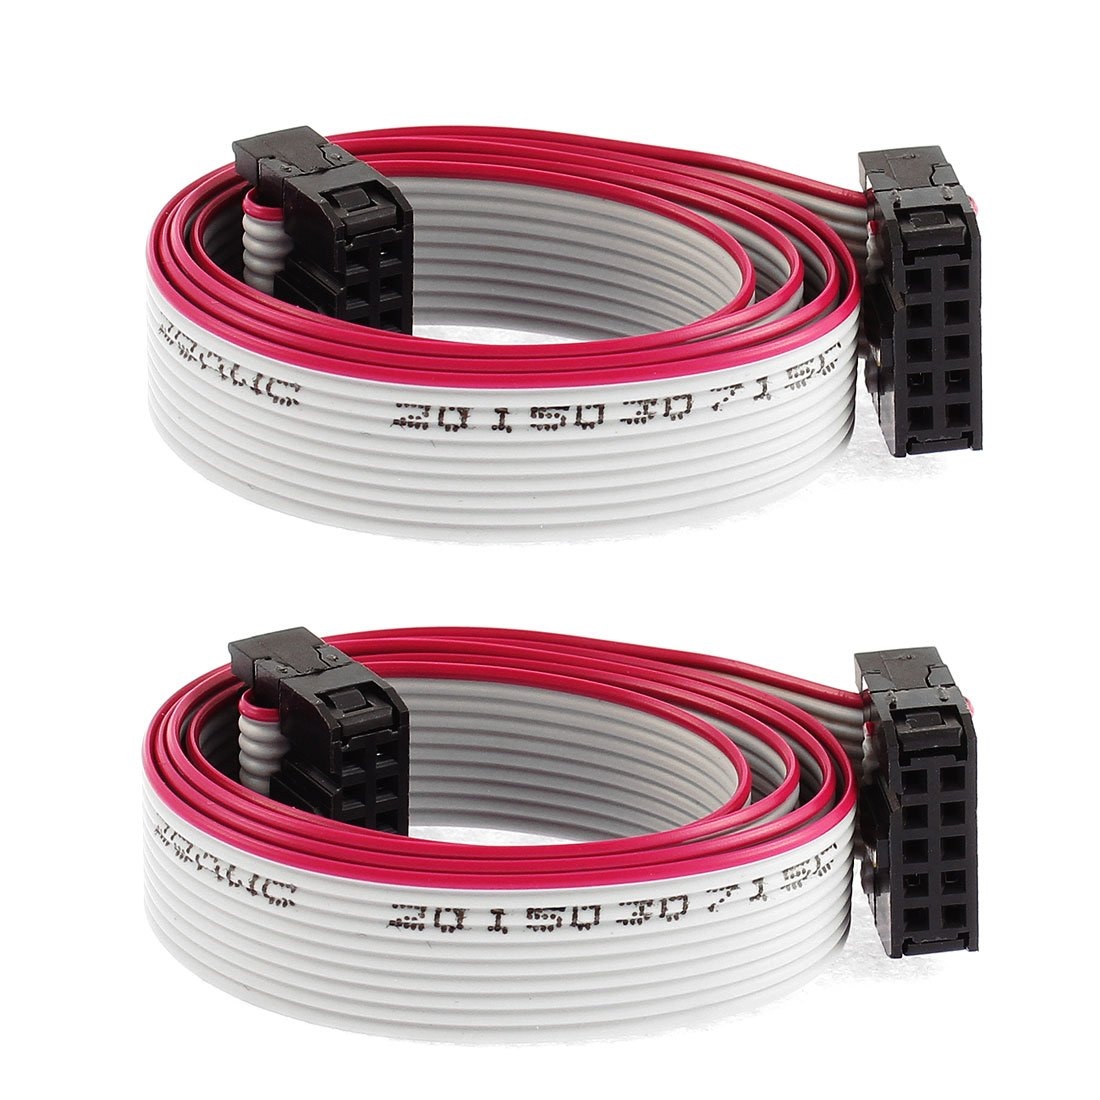 Uxcell IDC Socket 10 Pins Flat Ribbon Cable, 10 Wire, 50 cm Length, 2 Pieces